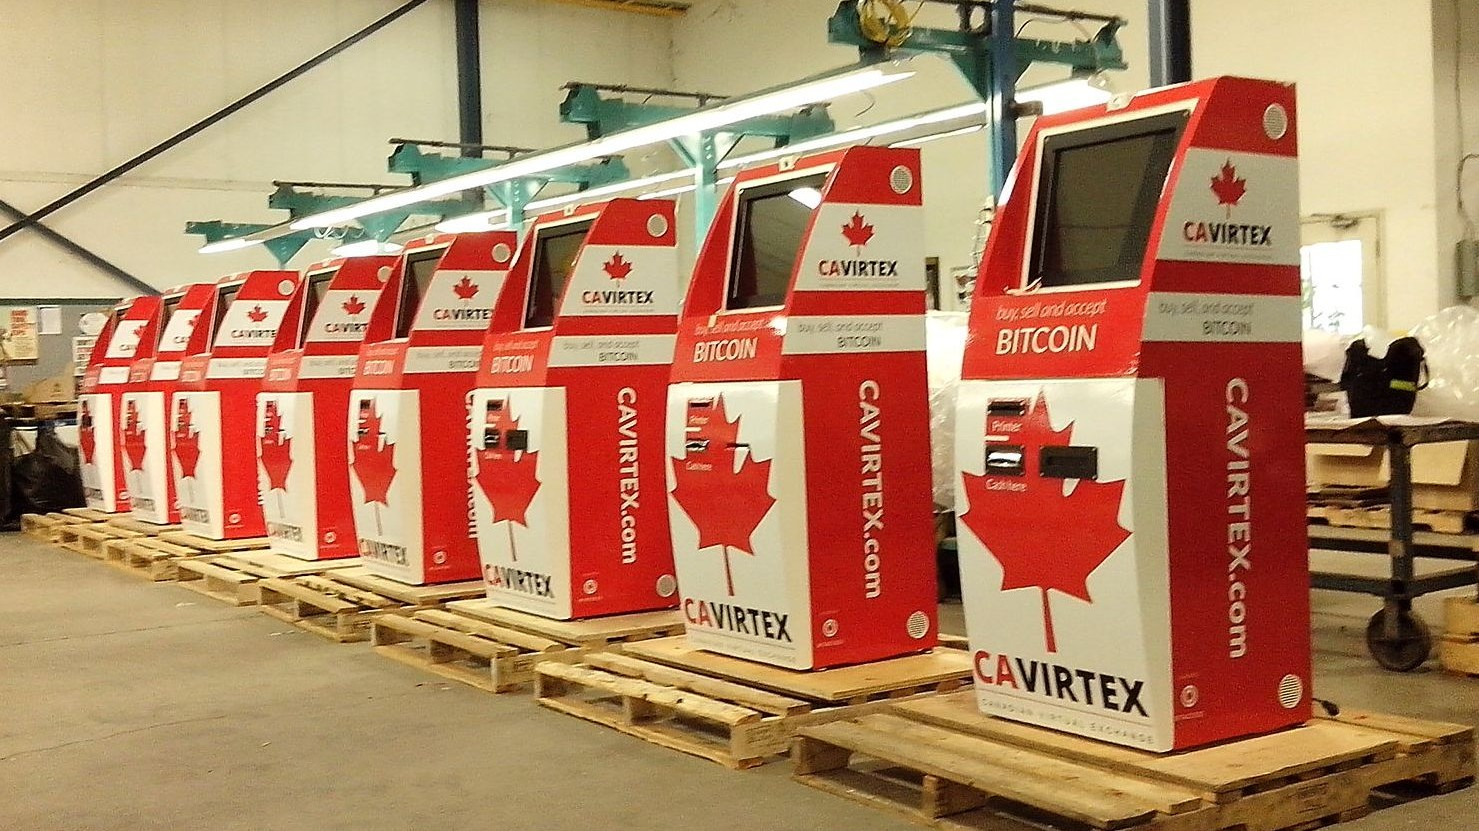 Apparently Canada Is Now the Bitcoin ATM 'Capital of the World'